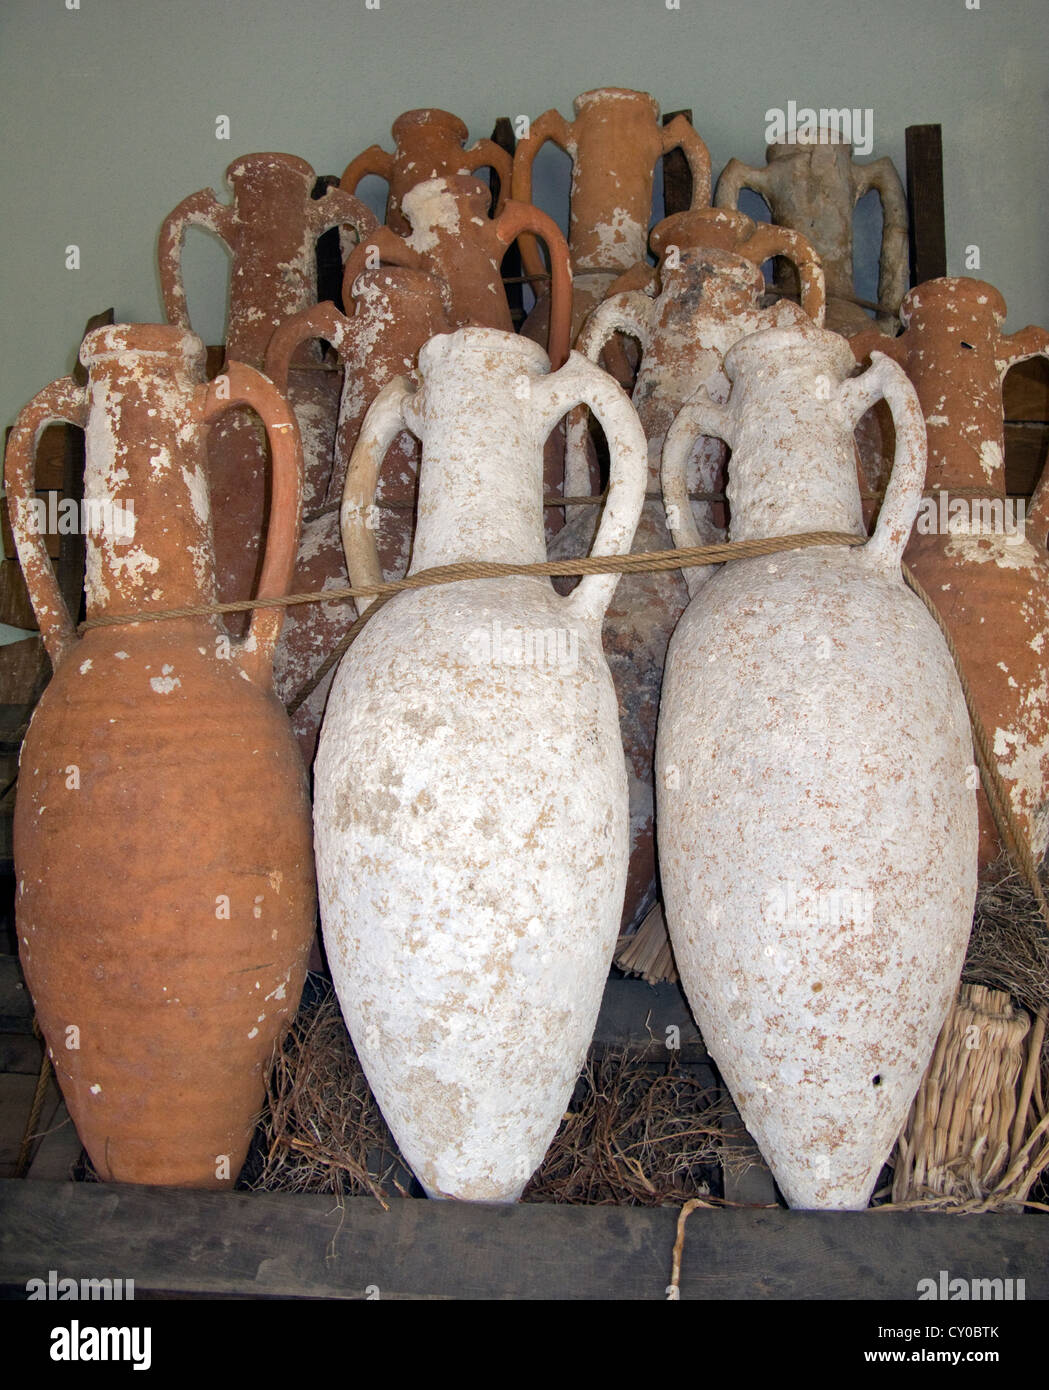 Findings, amphoras, Museum for Underwater Archaeology, Bodrum, Turkey - Stock Image